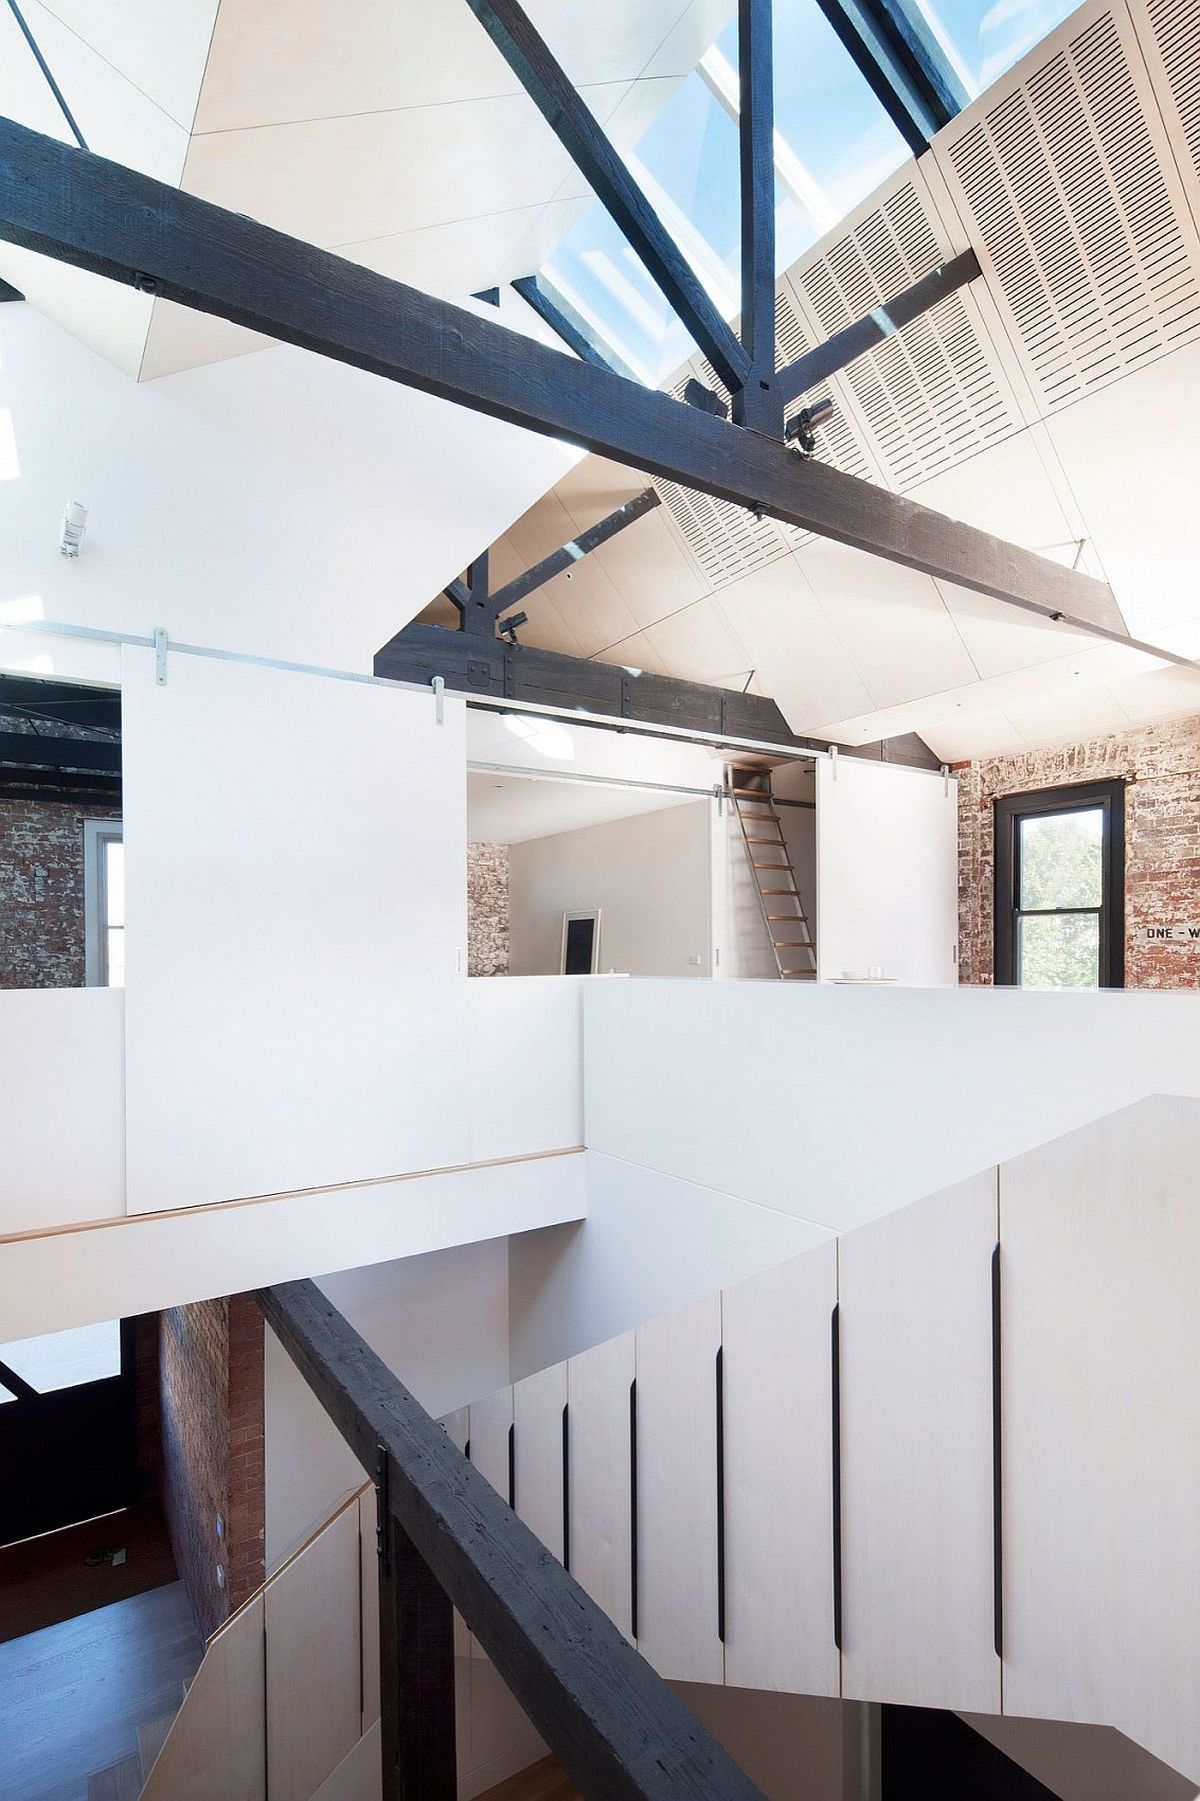 Original roof trusses and modern ceiling meet inside the converted warehouse residence